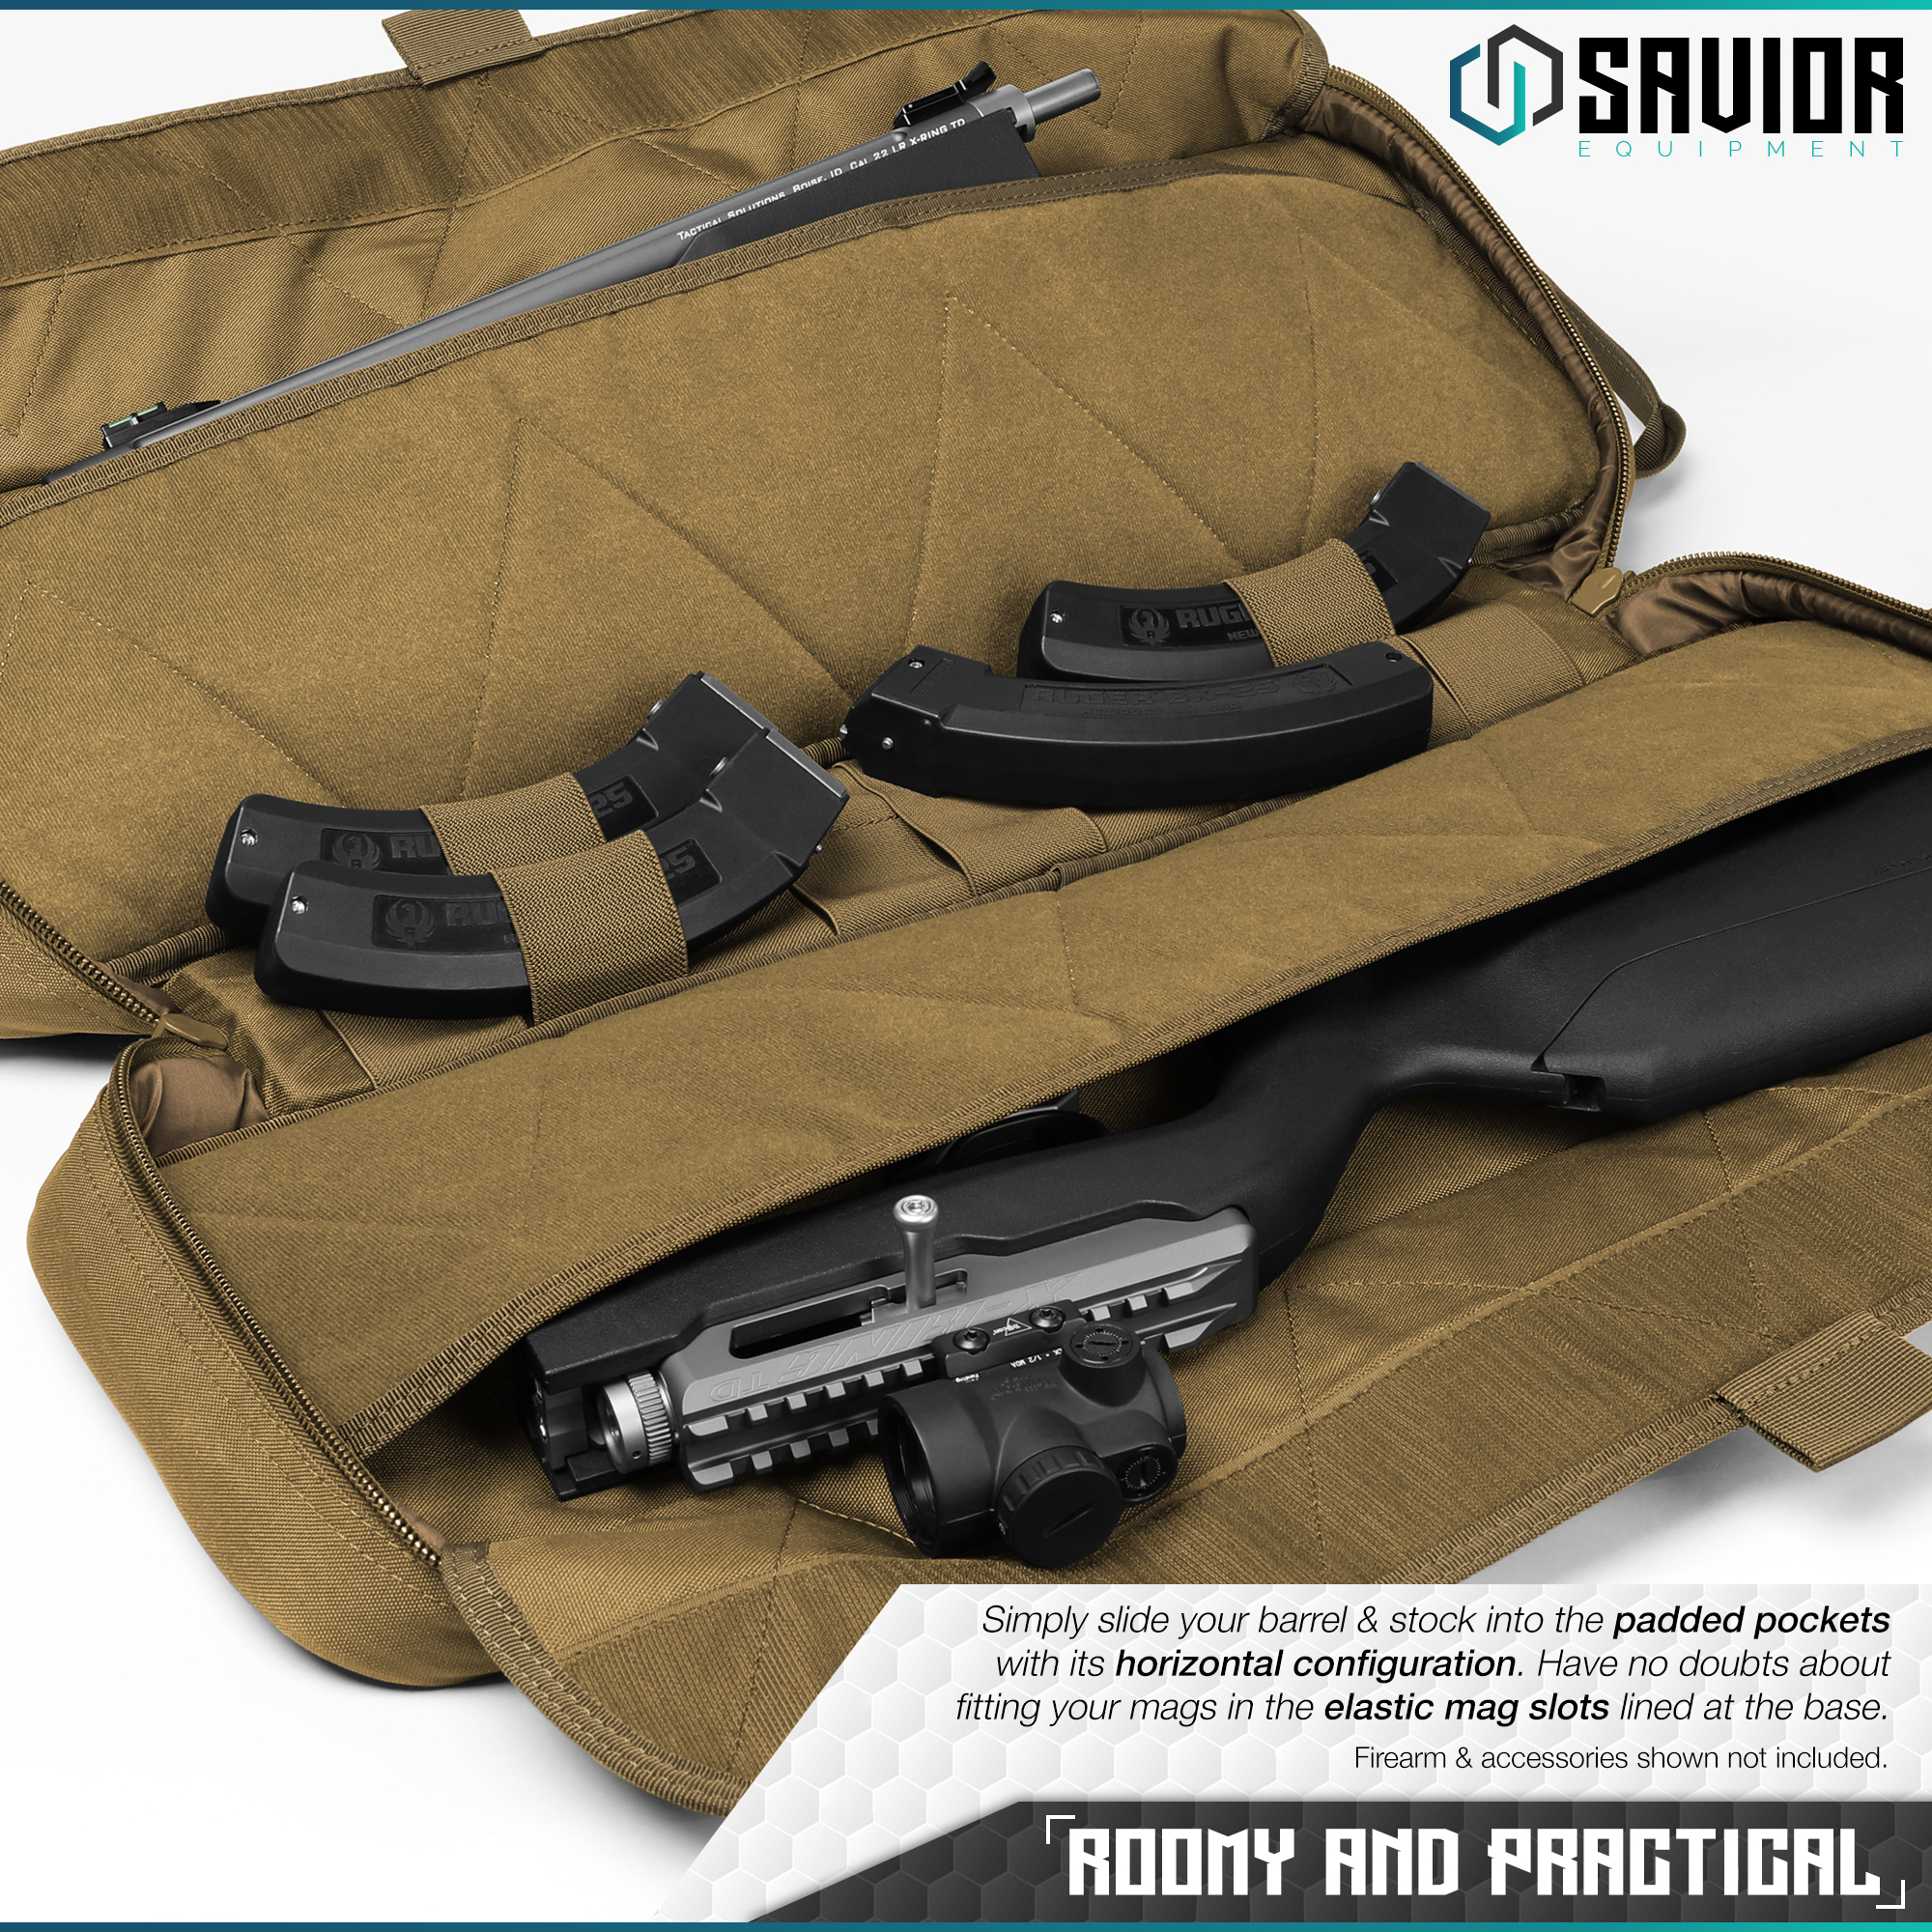 Savior-Tactical-Urban-Takedown-Bag-Carbine-Rifle-Padded-Shotgun-Firearm-Backpack thumbnail 4